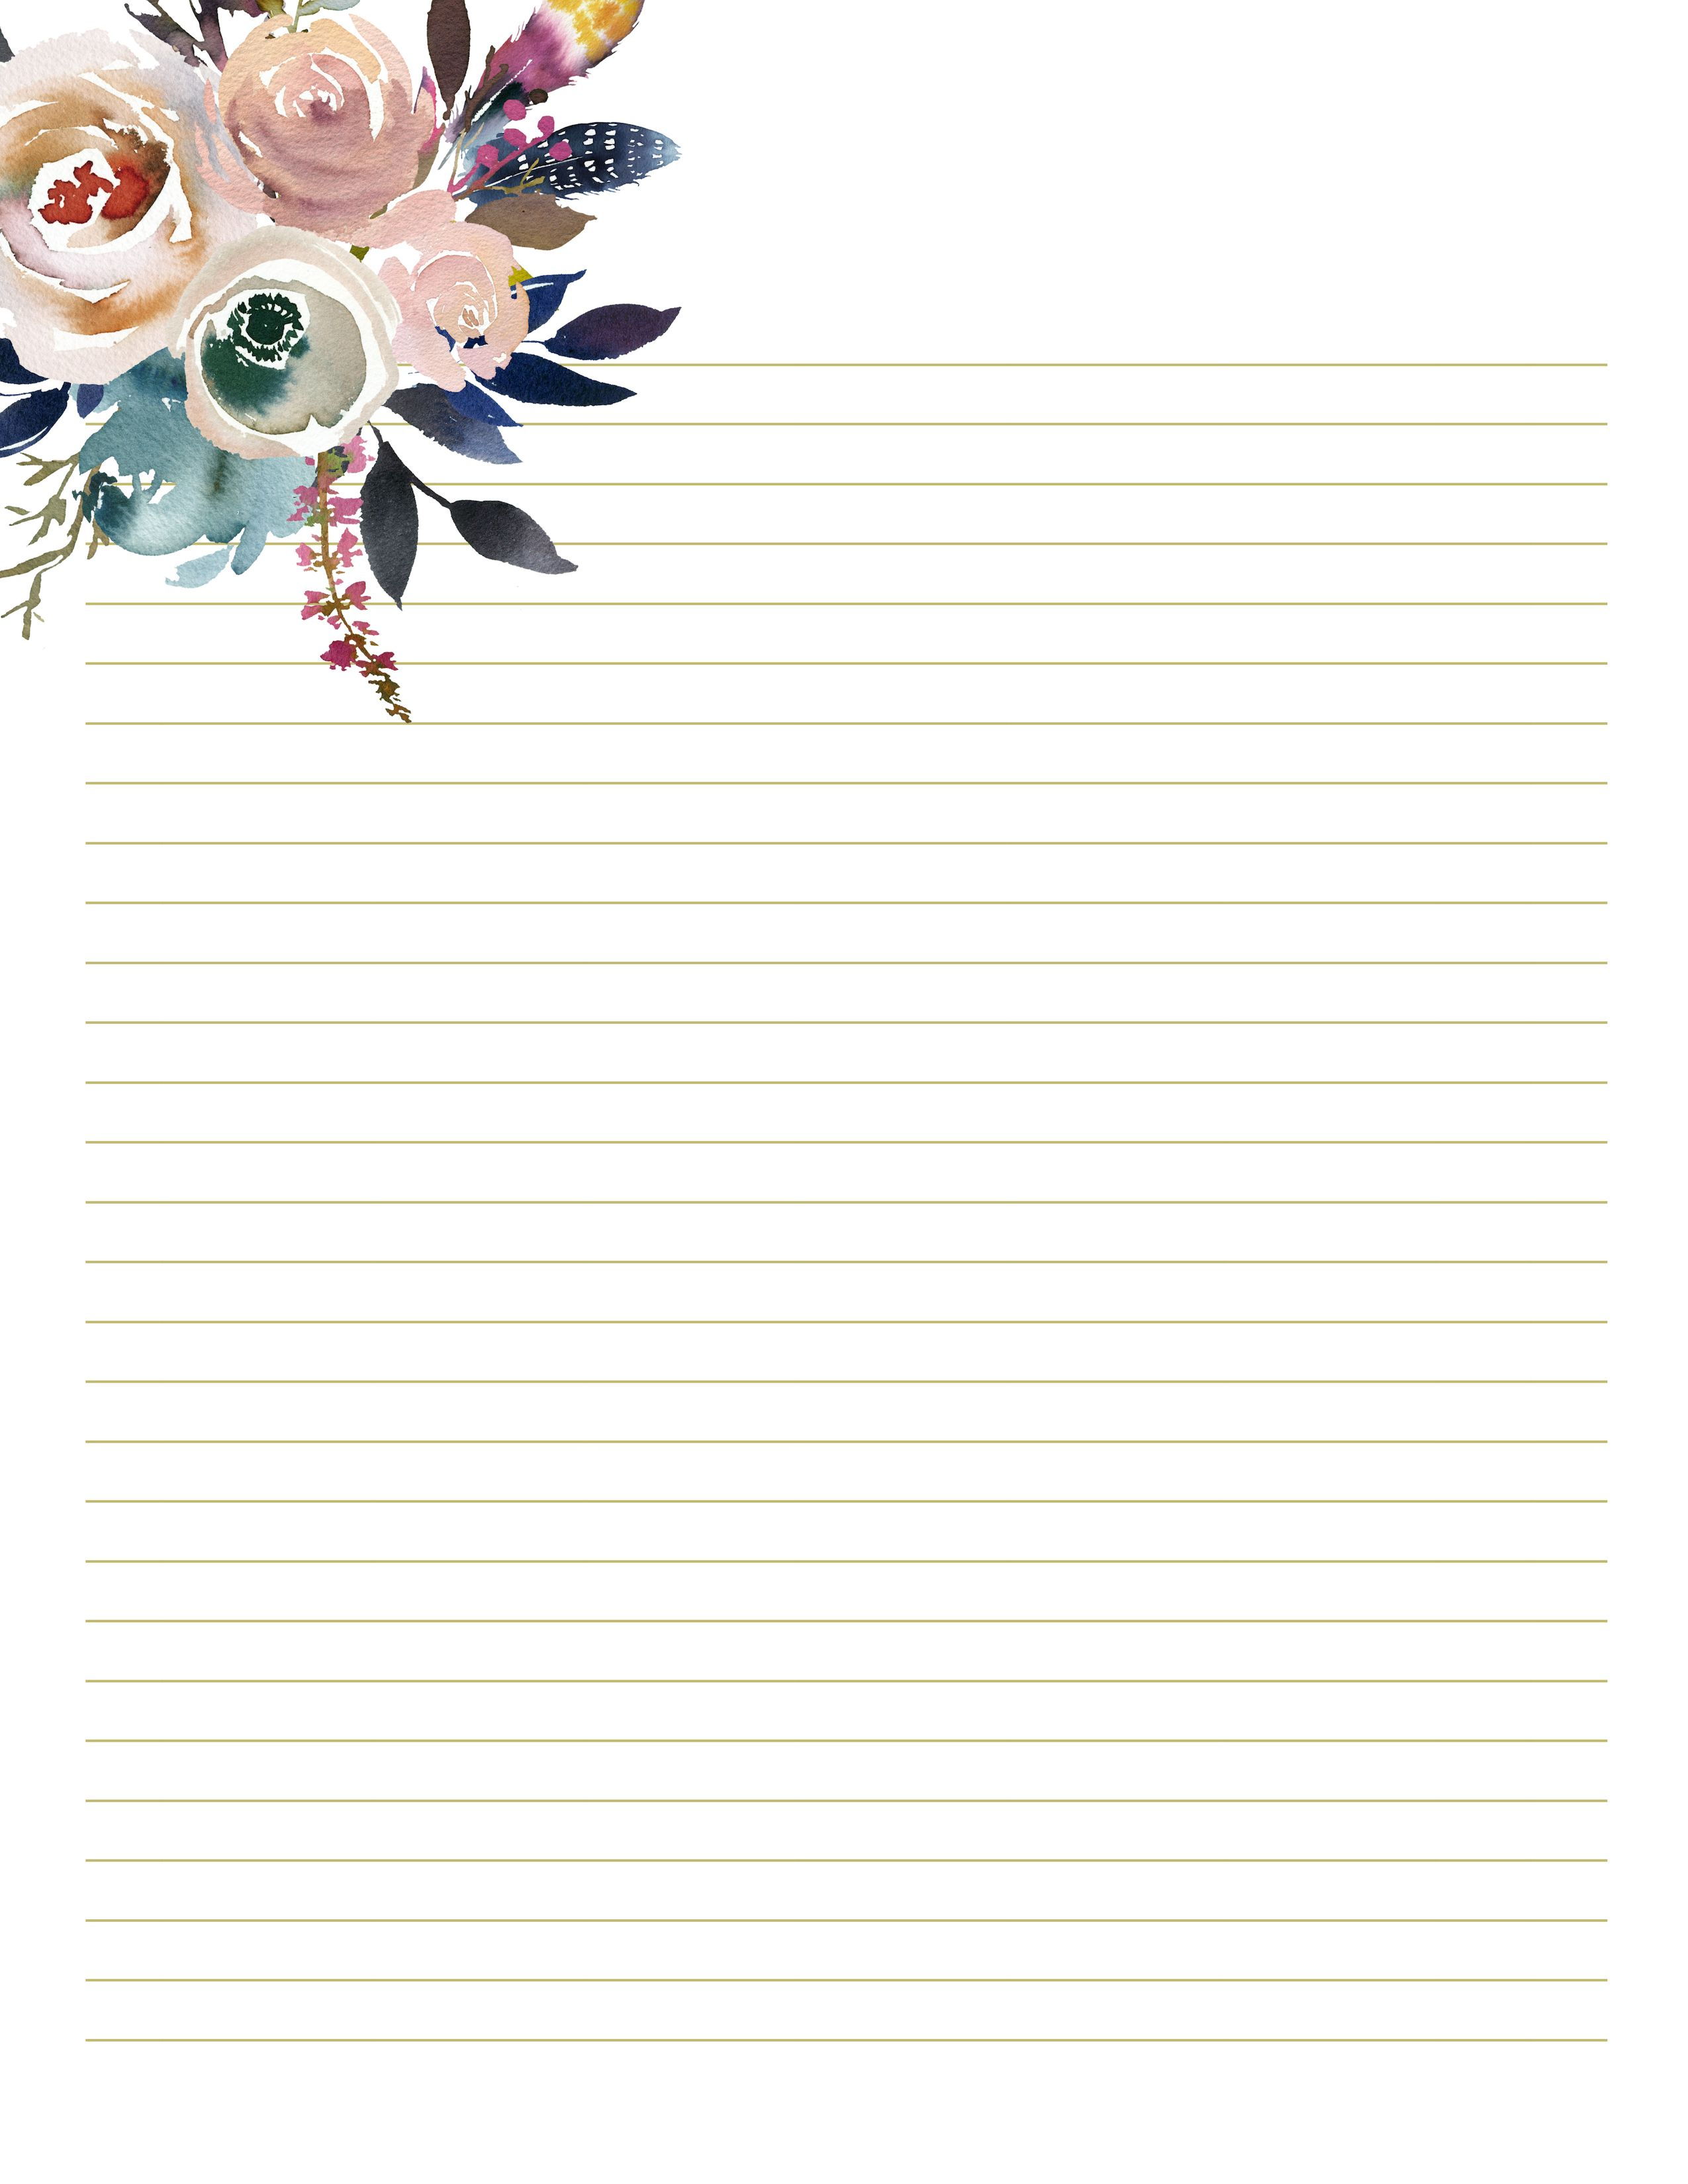 Cute Lined Paper to Print, cute lined paper, cute lined paper printable, cute lined paper template, cute lined paper to print, lined paper cute, cute lined paper black and white, cute lined animal paper download, free clip art cute lined paper, printable lined paper cute, cute lined paper for writing, lined cute stationery paper, lined cute paper small lines, kawaii cute lined paper, cute lined paper summer, cute drawings on lined paper, cute lined college ruled paper, kappa paper lined cute, cute printable lined preschool paper, lined paper cute teachery that says all about, cute french lined paper, how to make cute three-d letters on lined paper, cute animals on lined paper, cute dorm decorations using lined paper, cute lined paper summer pinapple, elementary lined writing paper cute, cute lined college ruled paper printable, cute halloween lined paper, cute lined paper coloring pages, cute lined paper backgrounds for powerpoint, cute lined letter paper, lined paper for cute letter, cute lined paper refill for 3 x 5 binders, lined paper cute tumblr backgrounds, cute lined paper printable blue, printeable lined paper with cute border, printable lined cute stationery paper, cute lined paper journal, cute dog paper lined, cute lined paper pattern background, cute lined paper free printable, cute lined paper headers, cute simple lined letter paper template, cute lined paper to write on for geandmother, muji high quality recycled paper lined notebook. these look cute and sleek. ..., what to make ou of glue lined paper cute tips and toilet paper, cute christmas lined paper, cute lined paper to write on, cute lined paper old looking, cute lined paper gold, cute lined writing paper